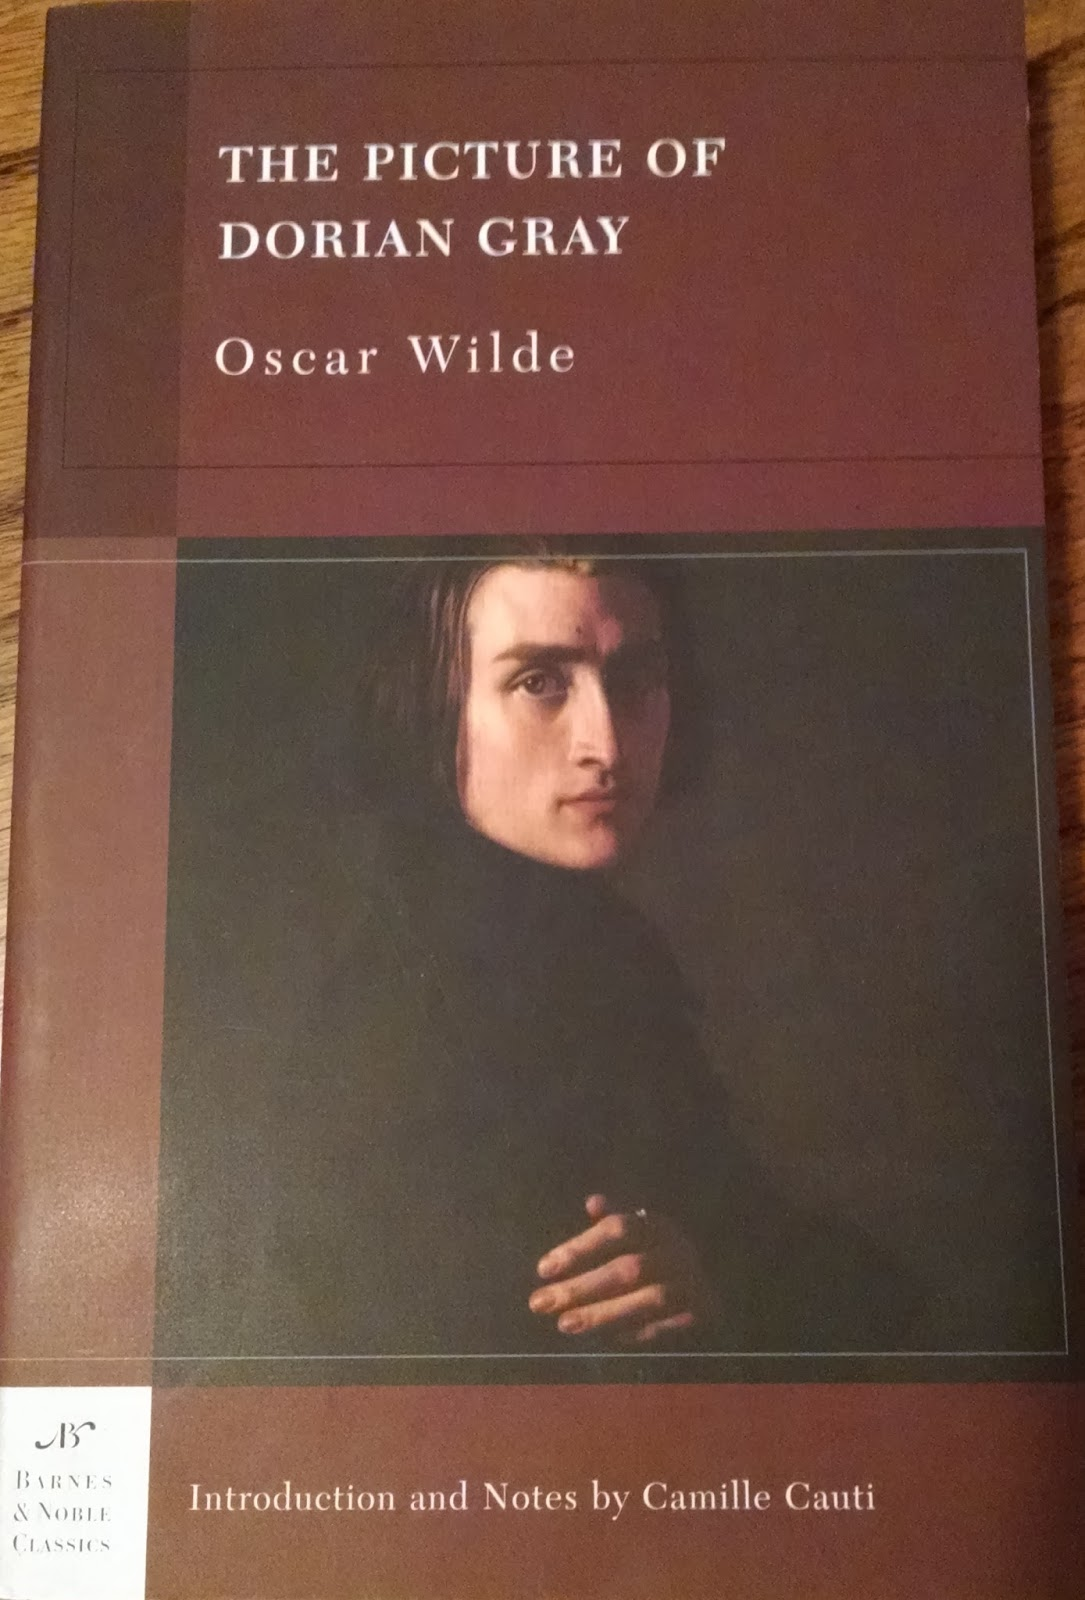 an analysis of oscar wildes the picture of dorian gray Oscar wilde as dorian gray 'i have put too much of myself in it' (wilde 12), commented basil hallward, a fictional artist, about his newly just like oscar wilde, the author of the picture of dorian gray (1890, revised 1891), who put so much of his life into his novel his experience.